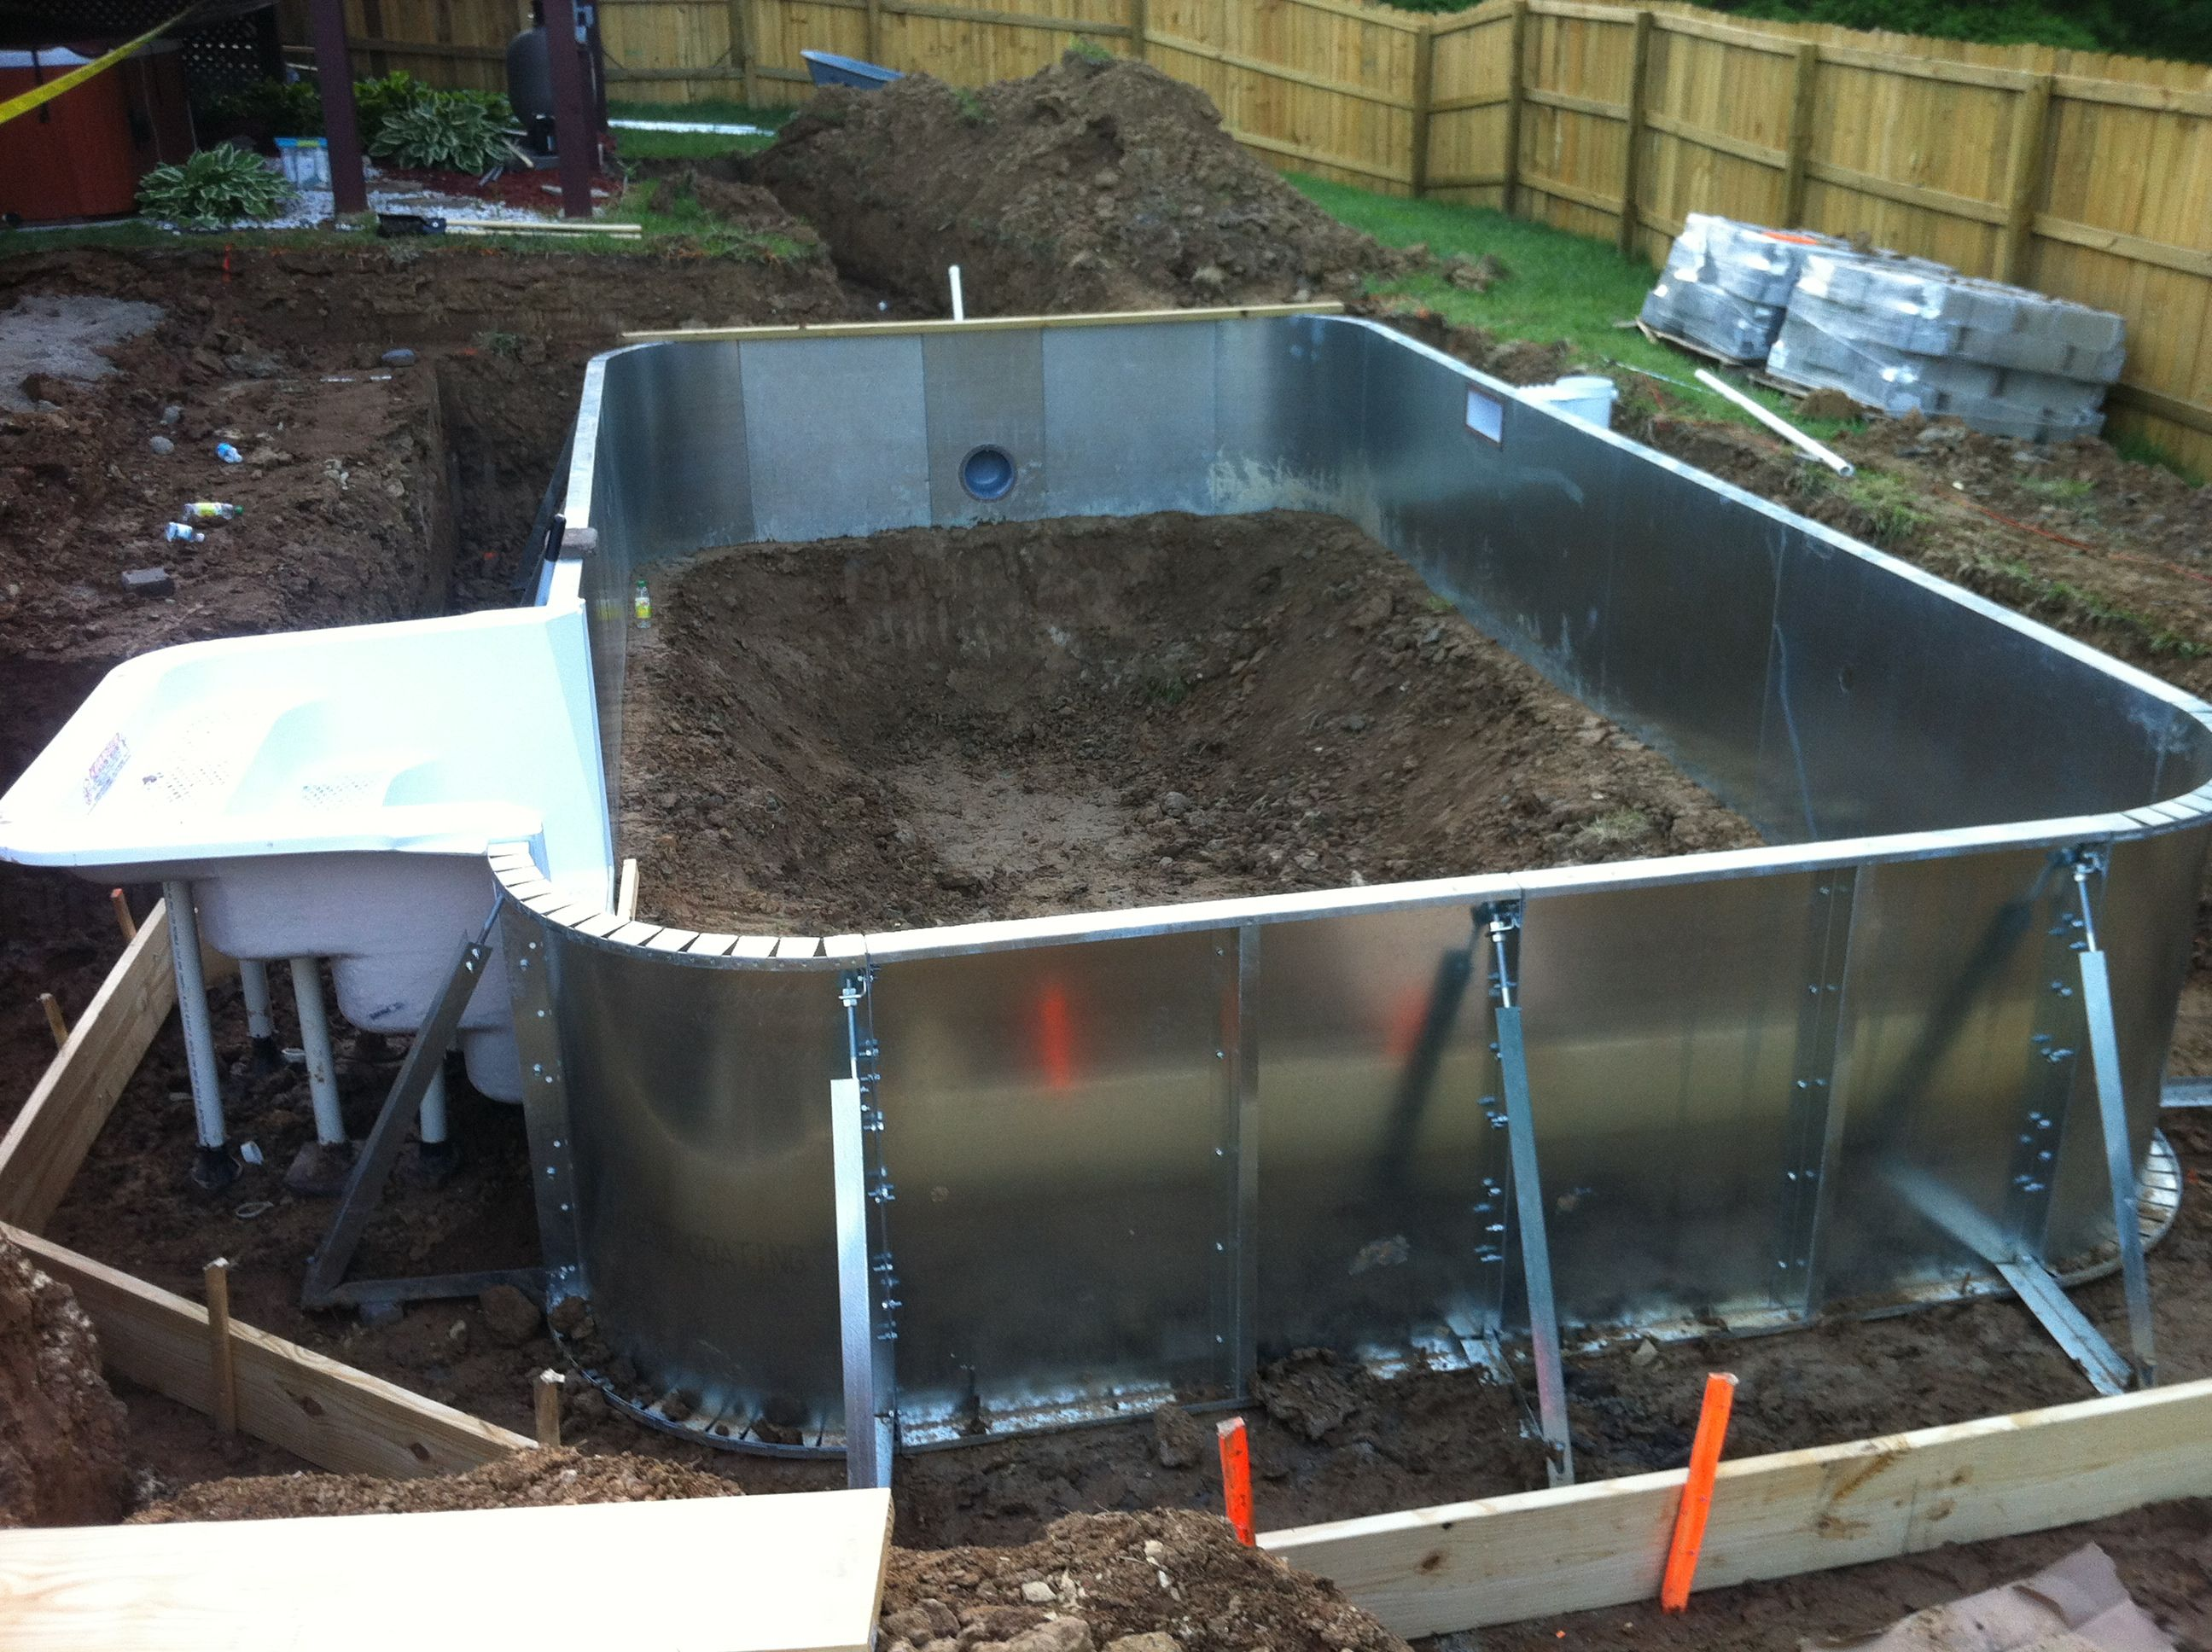 Steel Wall Inground Pool Kits Are Build To Last!